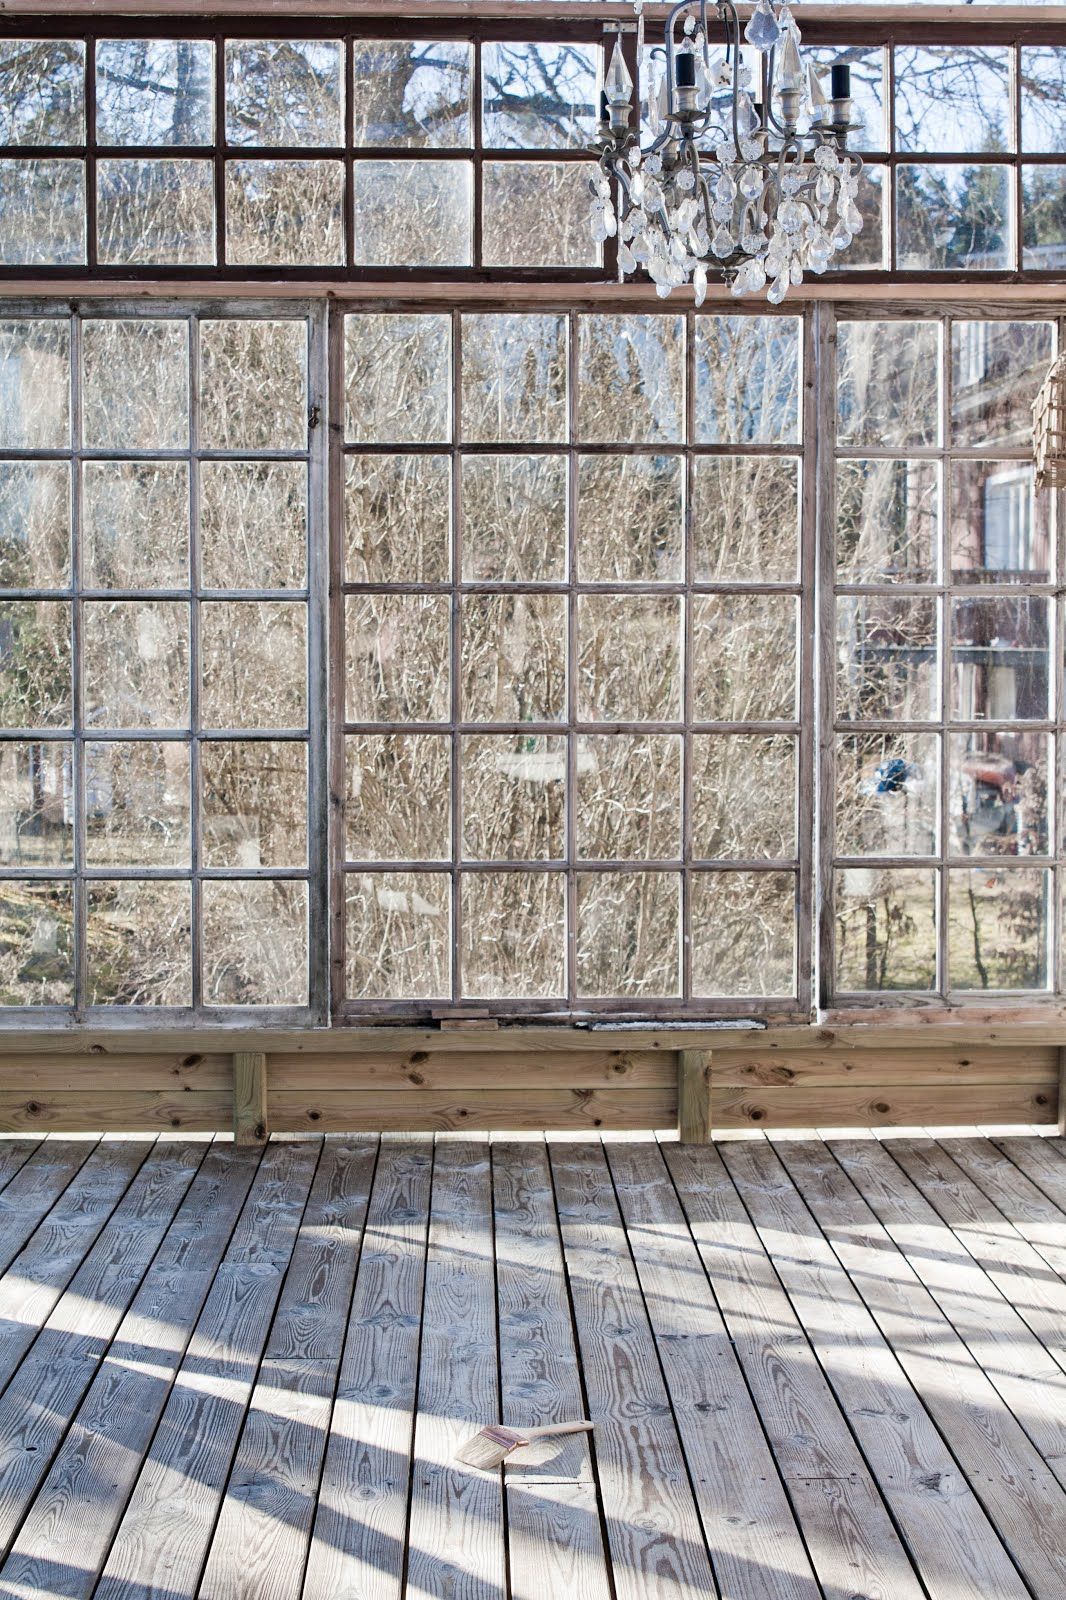 1000+ images about Udestue - sunroom on Pinterest